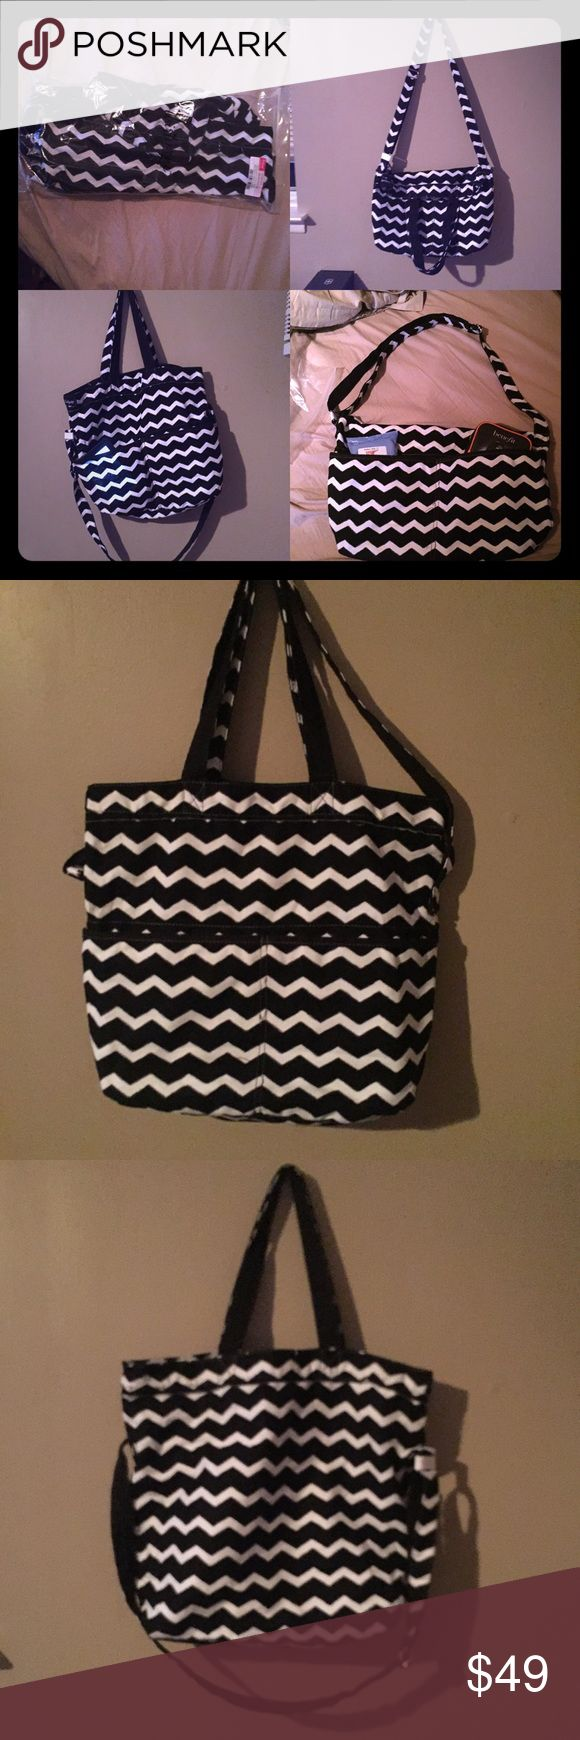 31 Retro Metro Foldover Black Chevron 1-HR SALE! Thirty-One Retro Metro Foldover Crossbody in Black Chevron. This item is RETIRED ! Brand new in original packaging with tags only taken out of packaging to take photos. There's a million and one ways to wear this versatile bag with its handles and adjustable long shoulder strap. Has 2 front pockets and inside zipper compartment Thirty One Bags Crossbody Bags